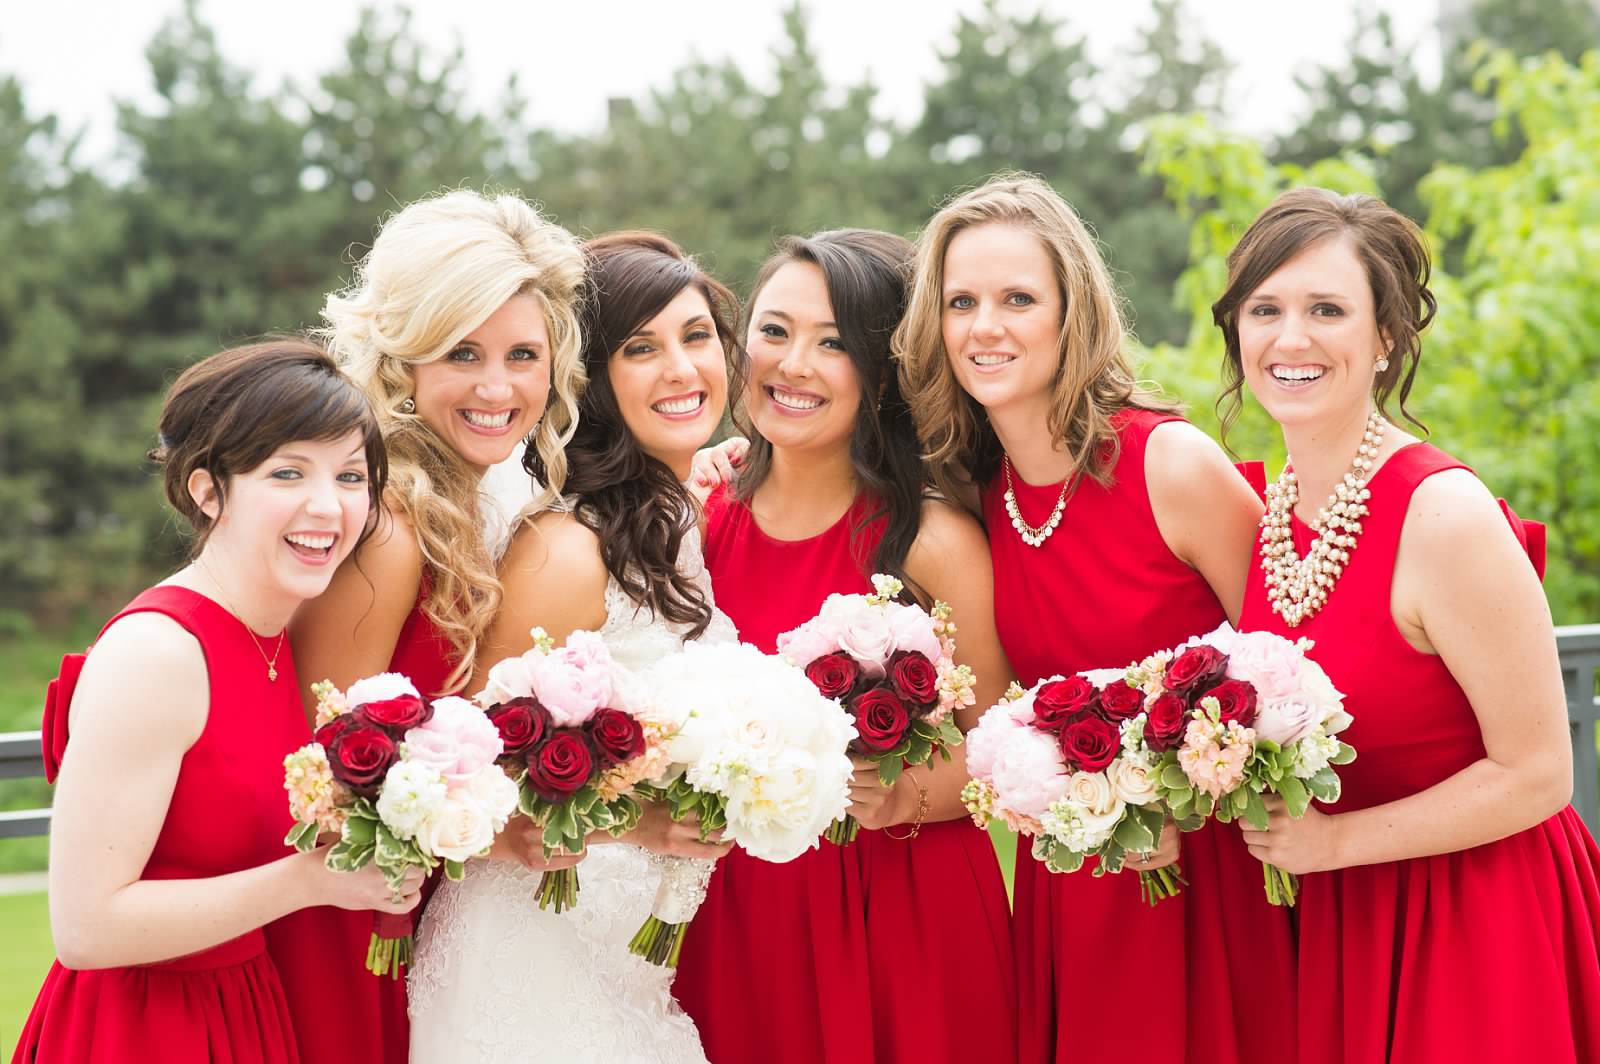 Bride and bridesmaids with red, white, and pink bouquets 2.jpg